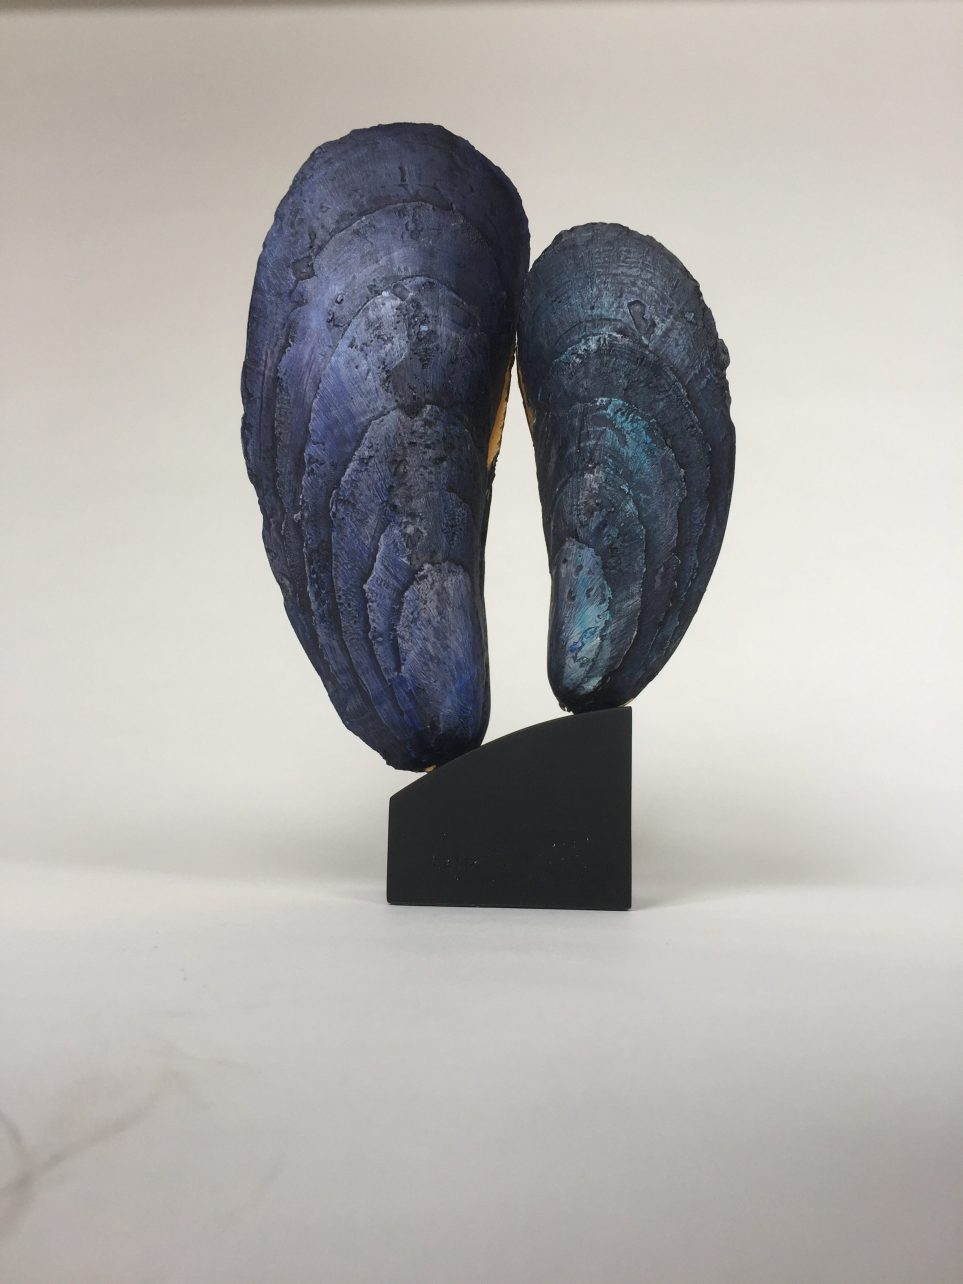 Light And Shade Lucy Gray Sculpture